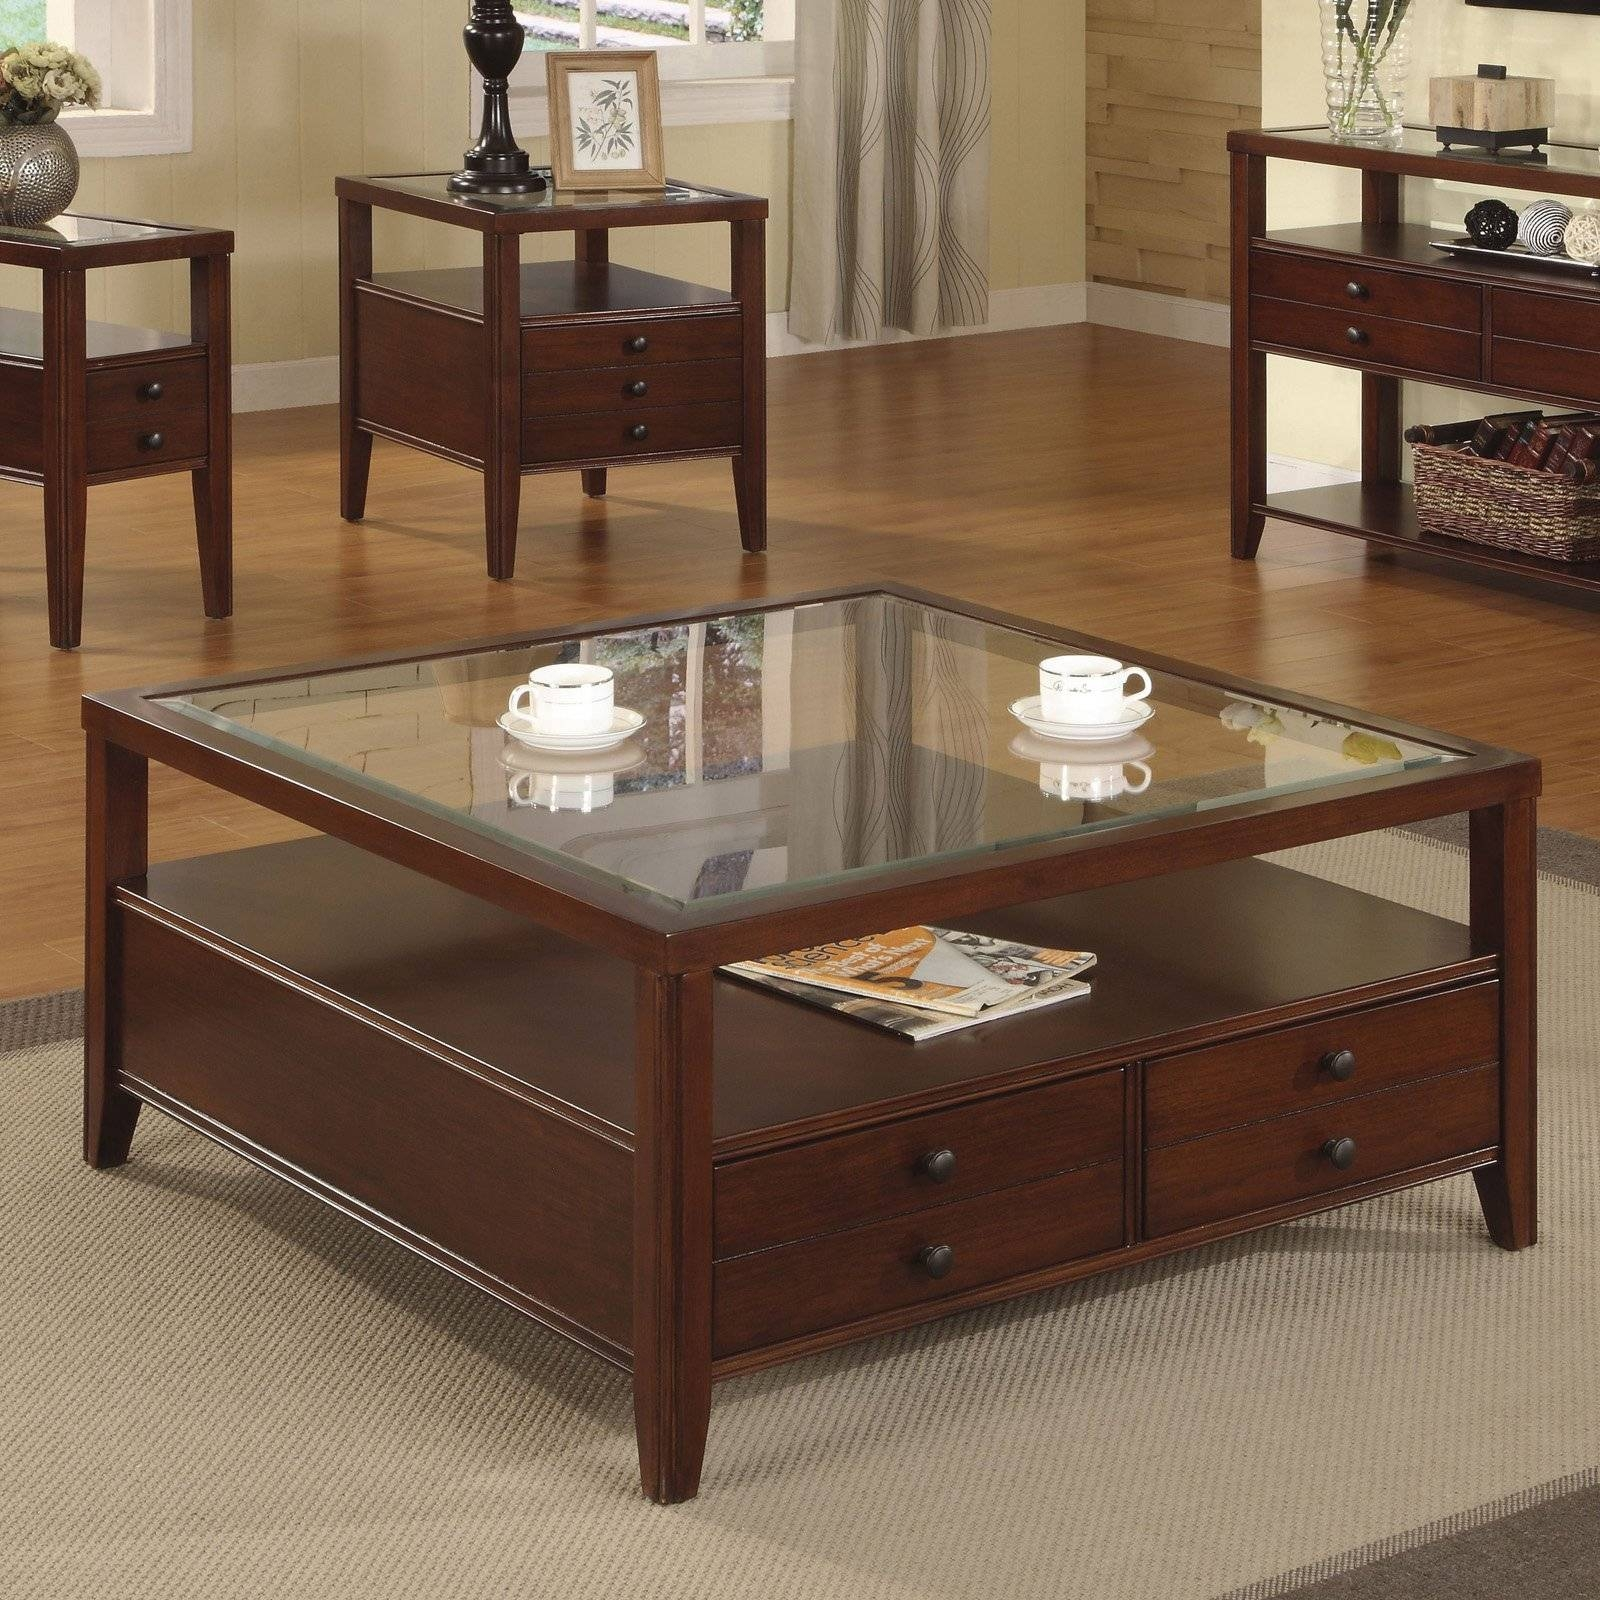 Furniture Glass And Wood Coffee Table. The Angled Gl Provides And intended for Dark Wood Coffee Tables With Glass Top (Image 13 of 30)